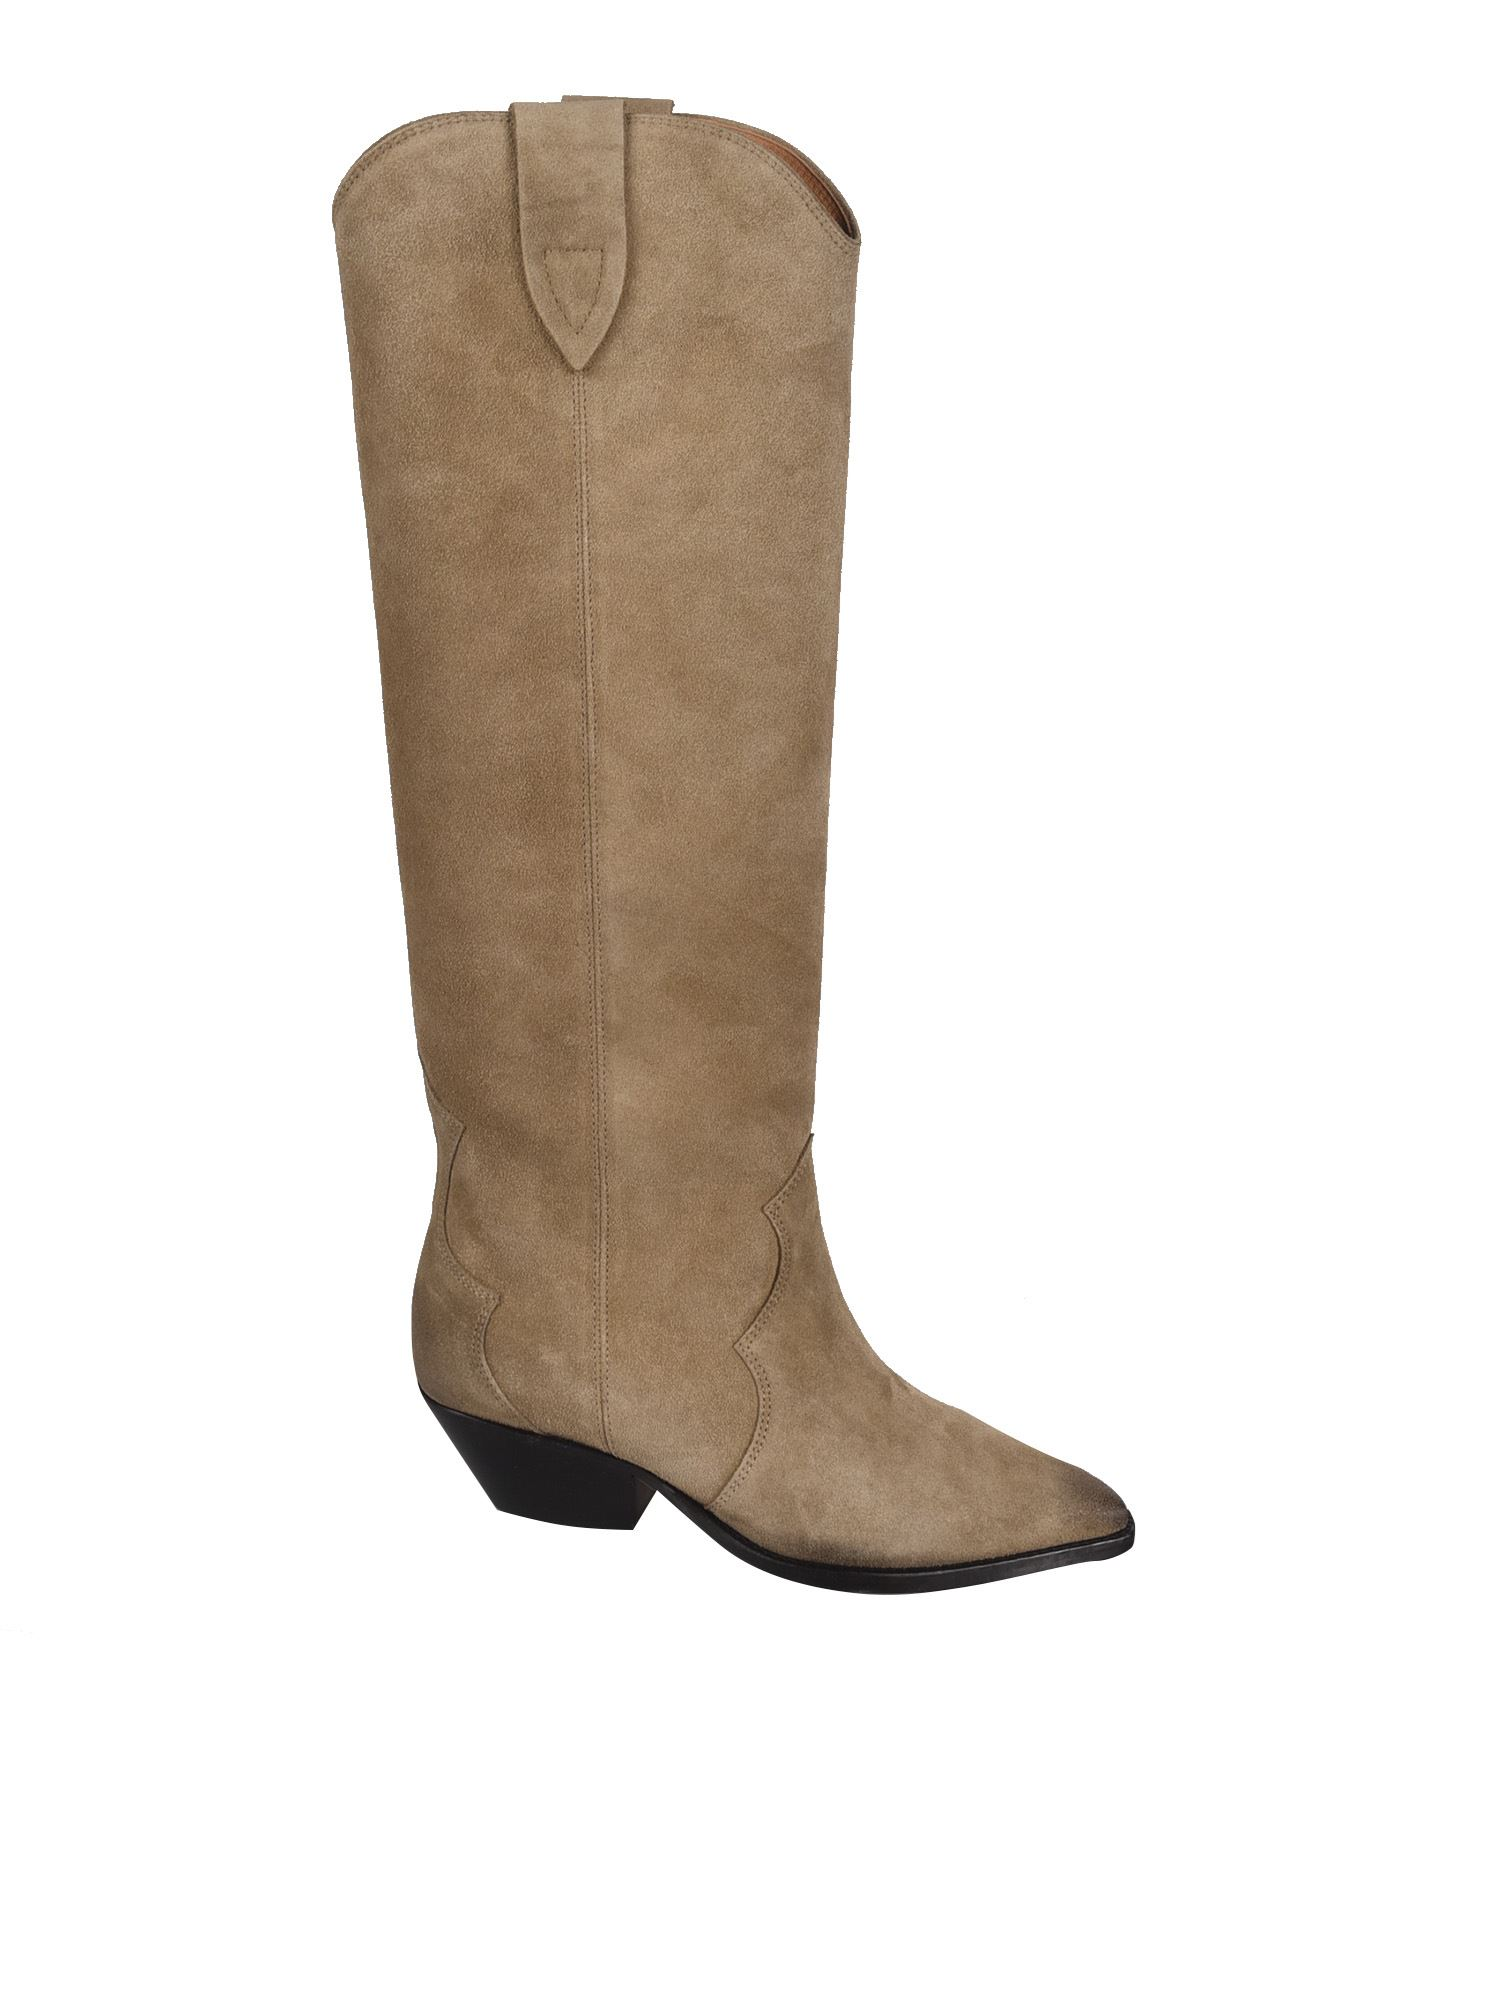 Isabel Marant ISABEL MARANT DENVEE TEXAN BOOTS IN TAUPE COLOR